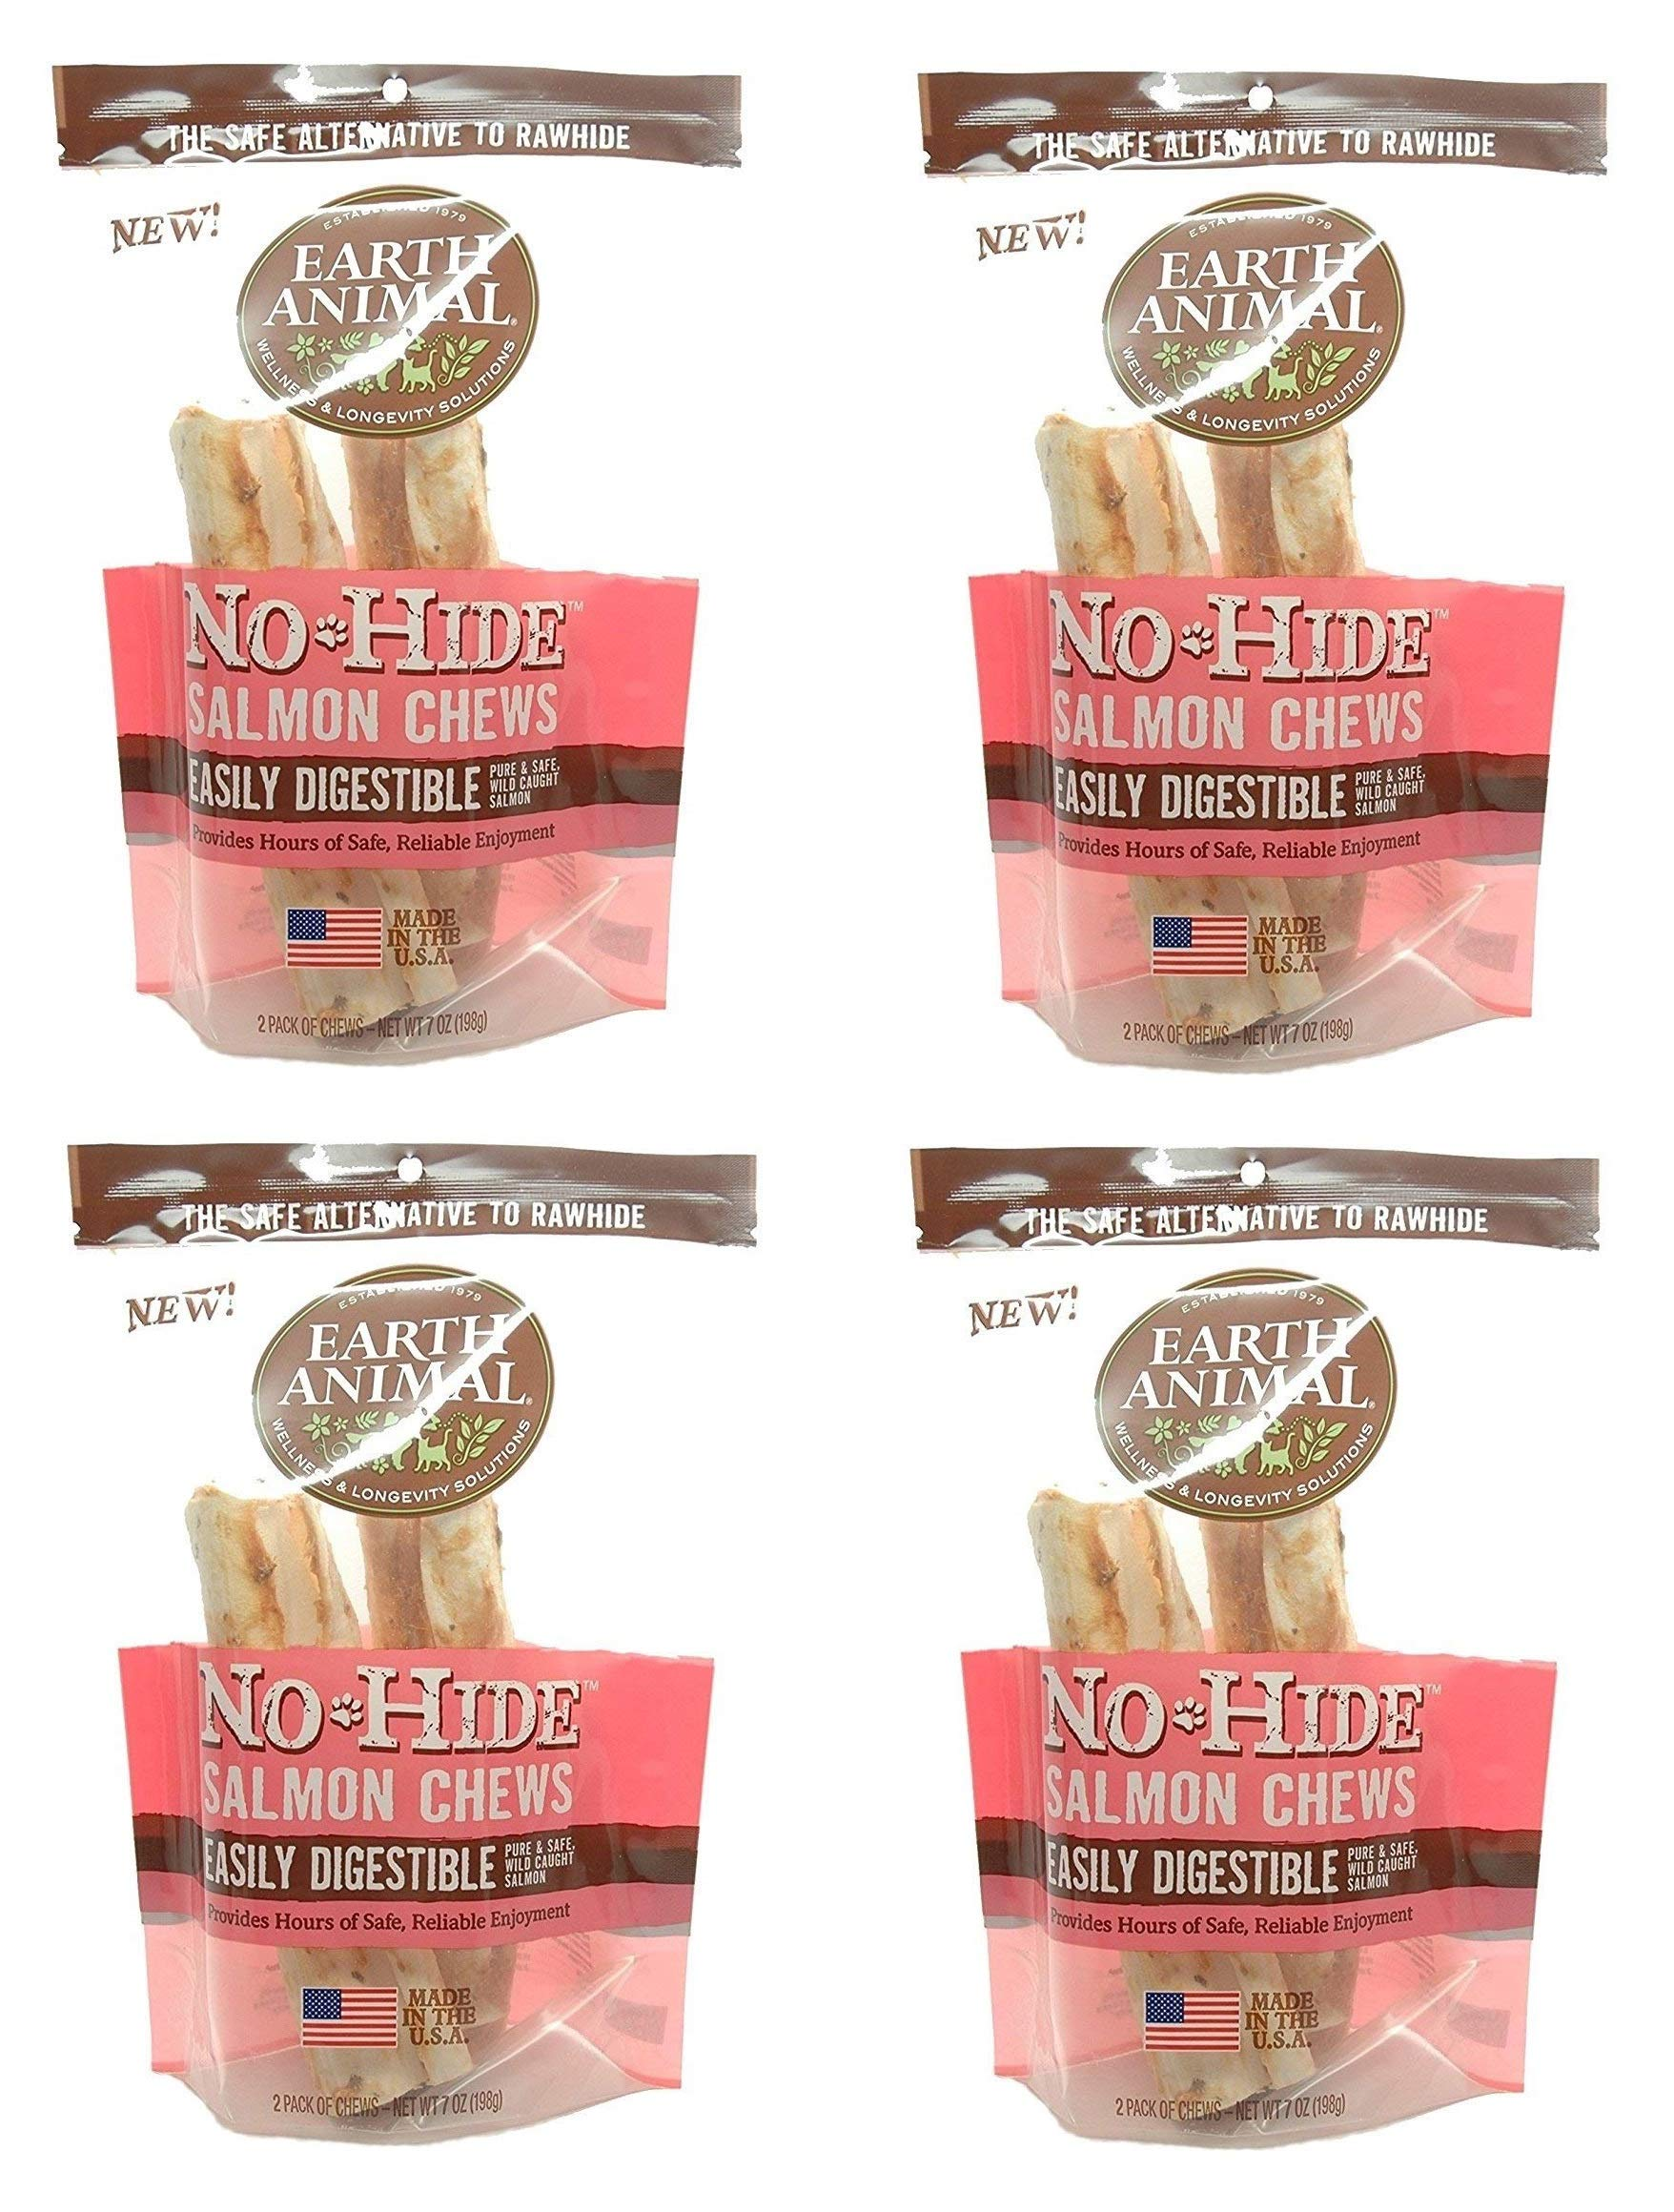 Earth Animal 8 Count No-Hide Salmon Chews, 4 Inches Each by Earth Animal